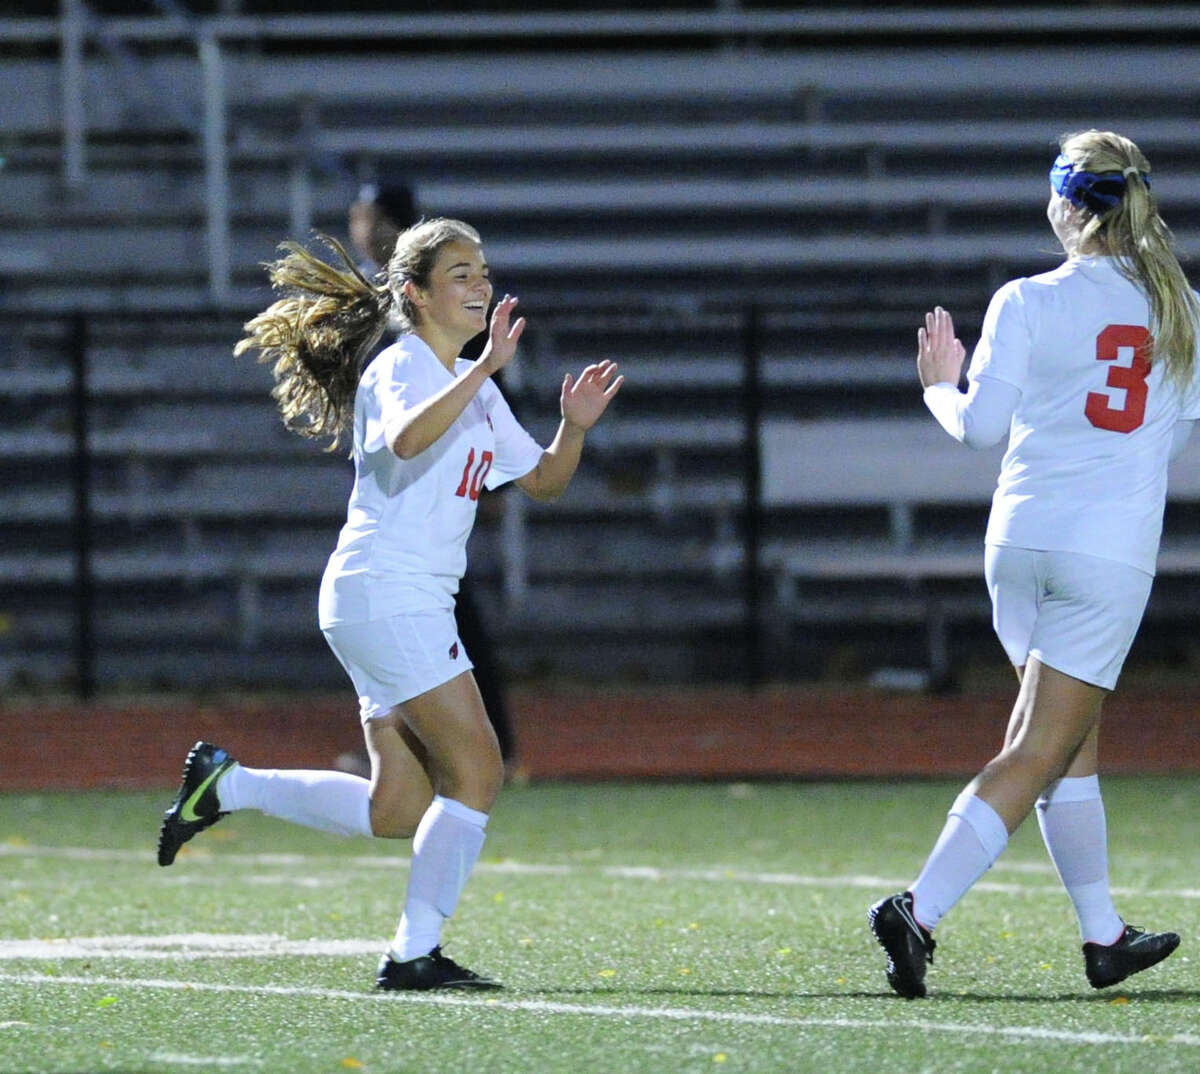 At left, Emily Berzolla (#10) of Greenwich smiles after scoring the only goal of the match during first half action of the girls high school soccer match between Greenwich High School and Trumbull High School at Greenwich, Conn., Thursday, Oct. 23, 2014. At right is Berzolla's Greenwich teammate Treloara Harrisson (#3). Greenwich won the match, 1-0.